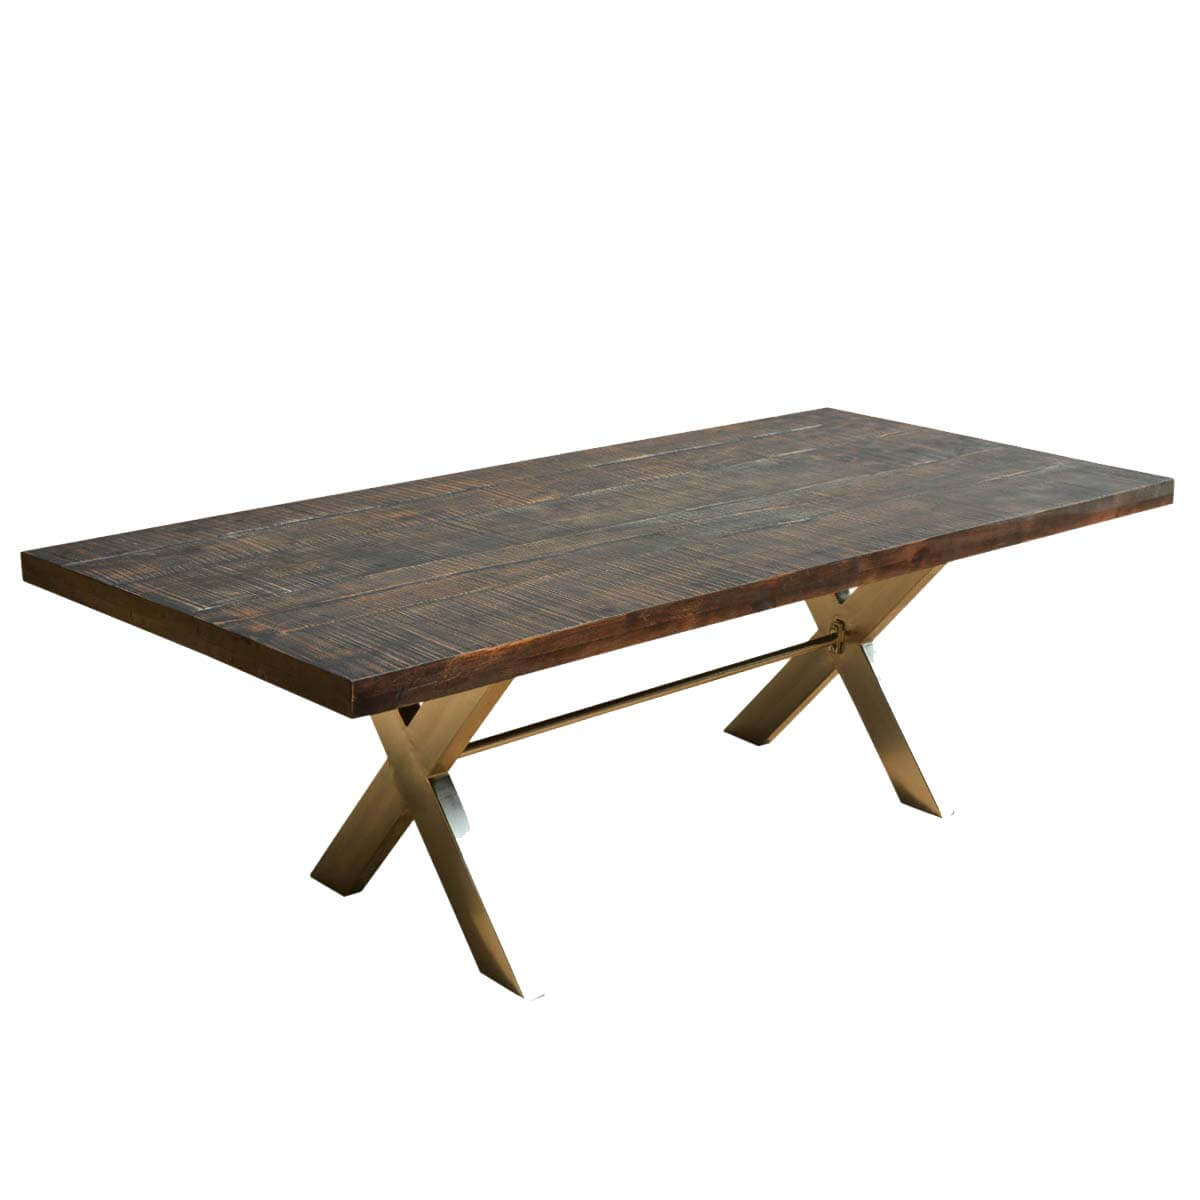 mckay 88 rustic wood hankin industrial iron x legs dining table